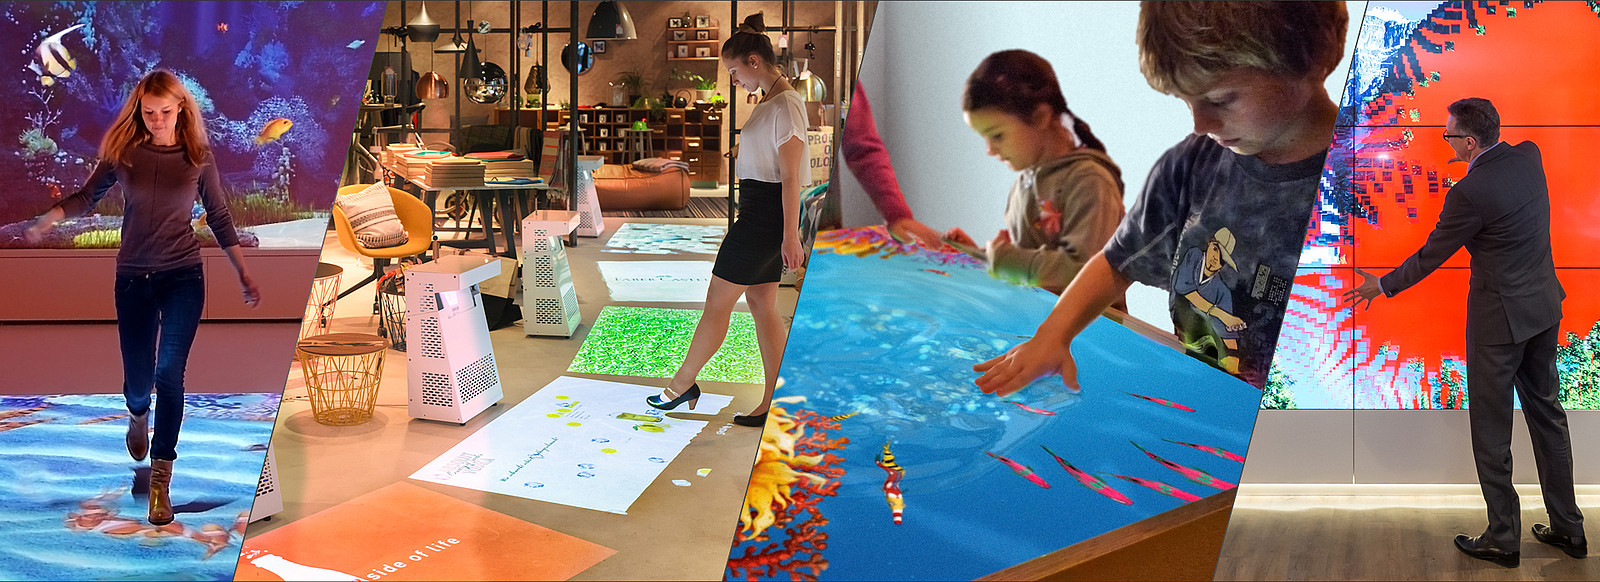 interactive media installations based on ›living surface‹